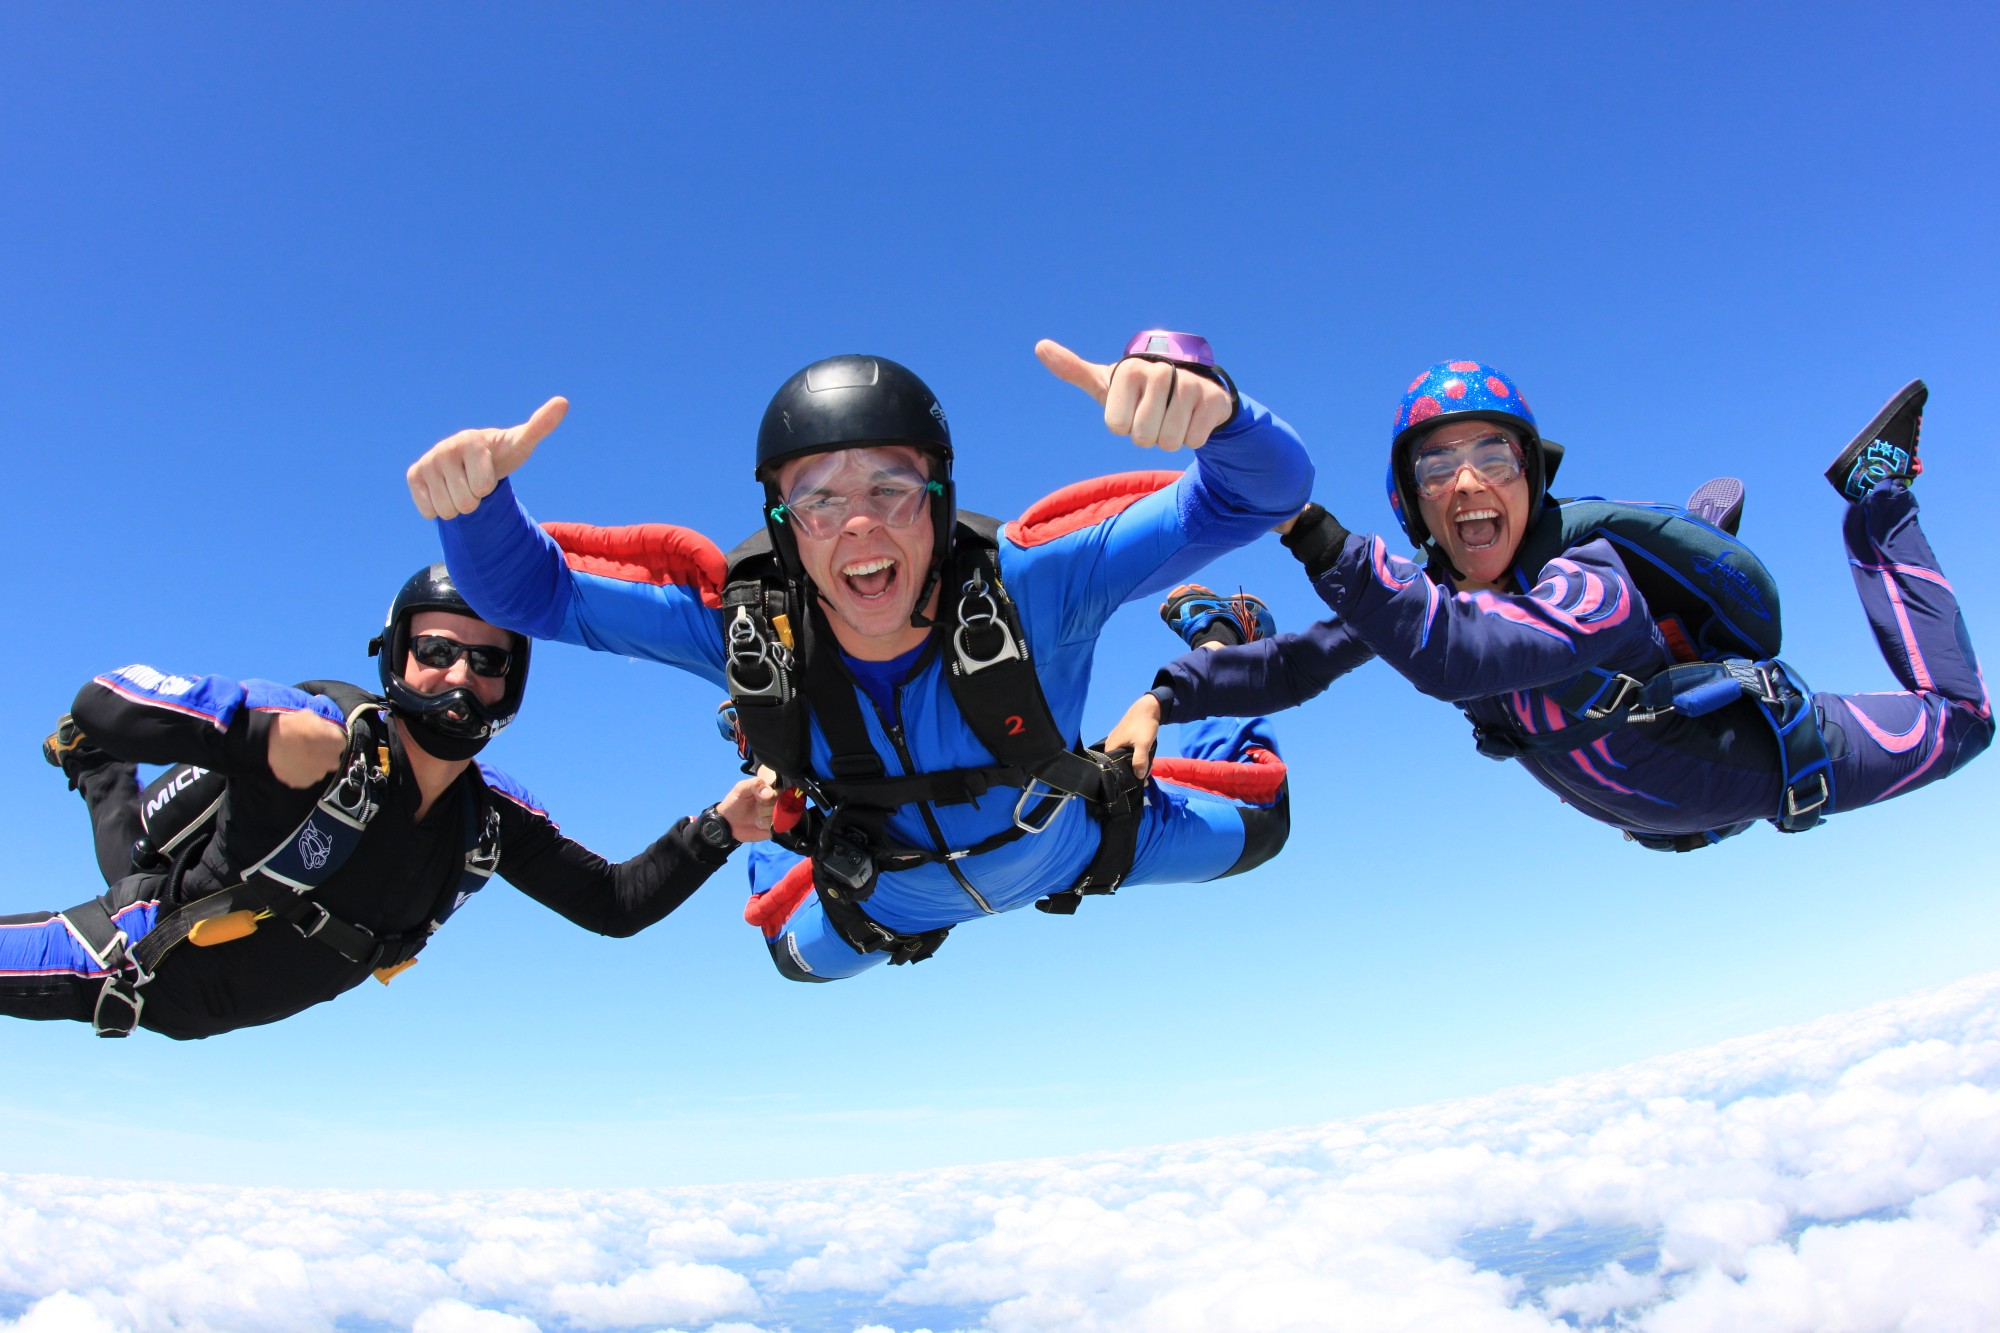 Skydiving is a profound and rare life experience